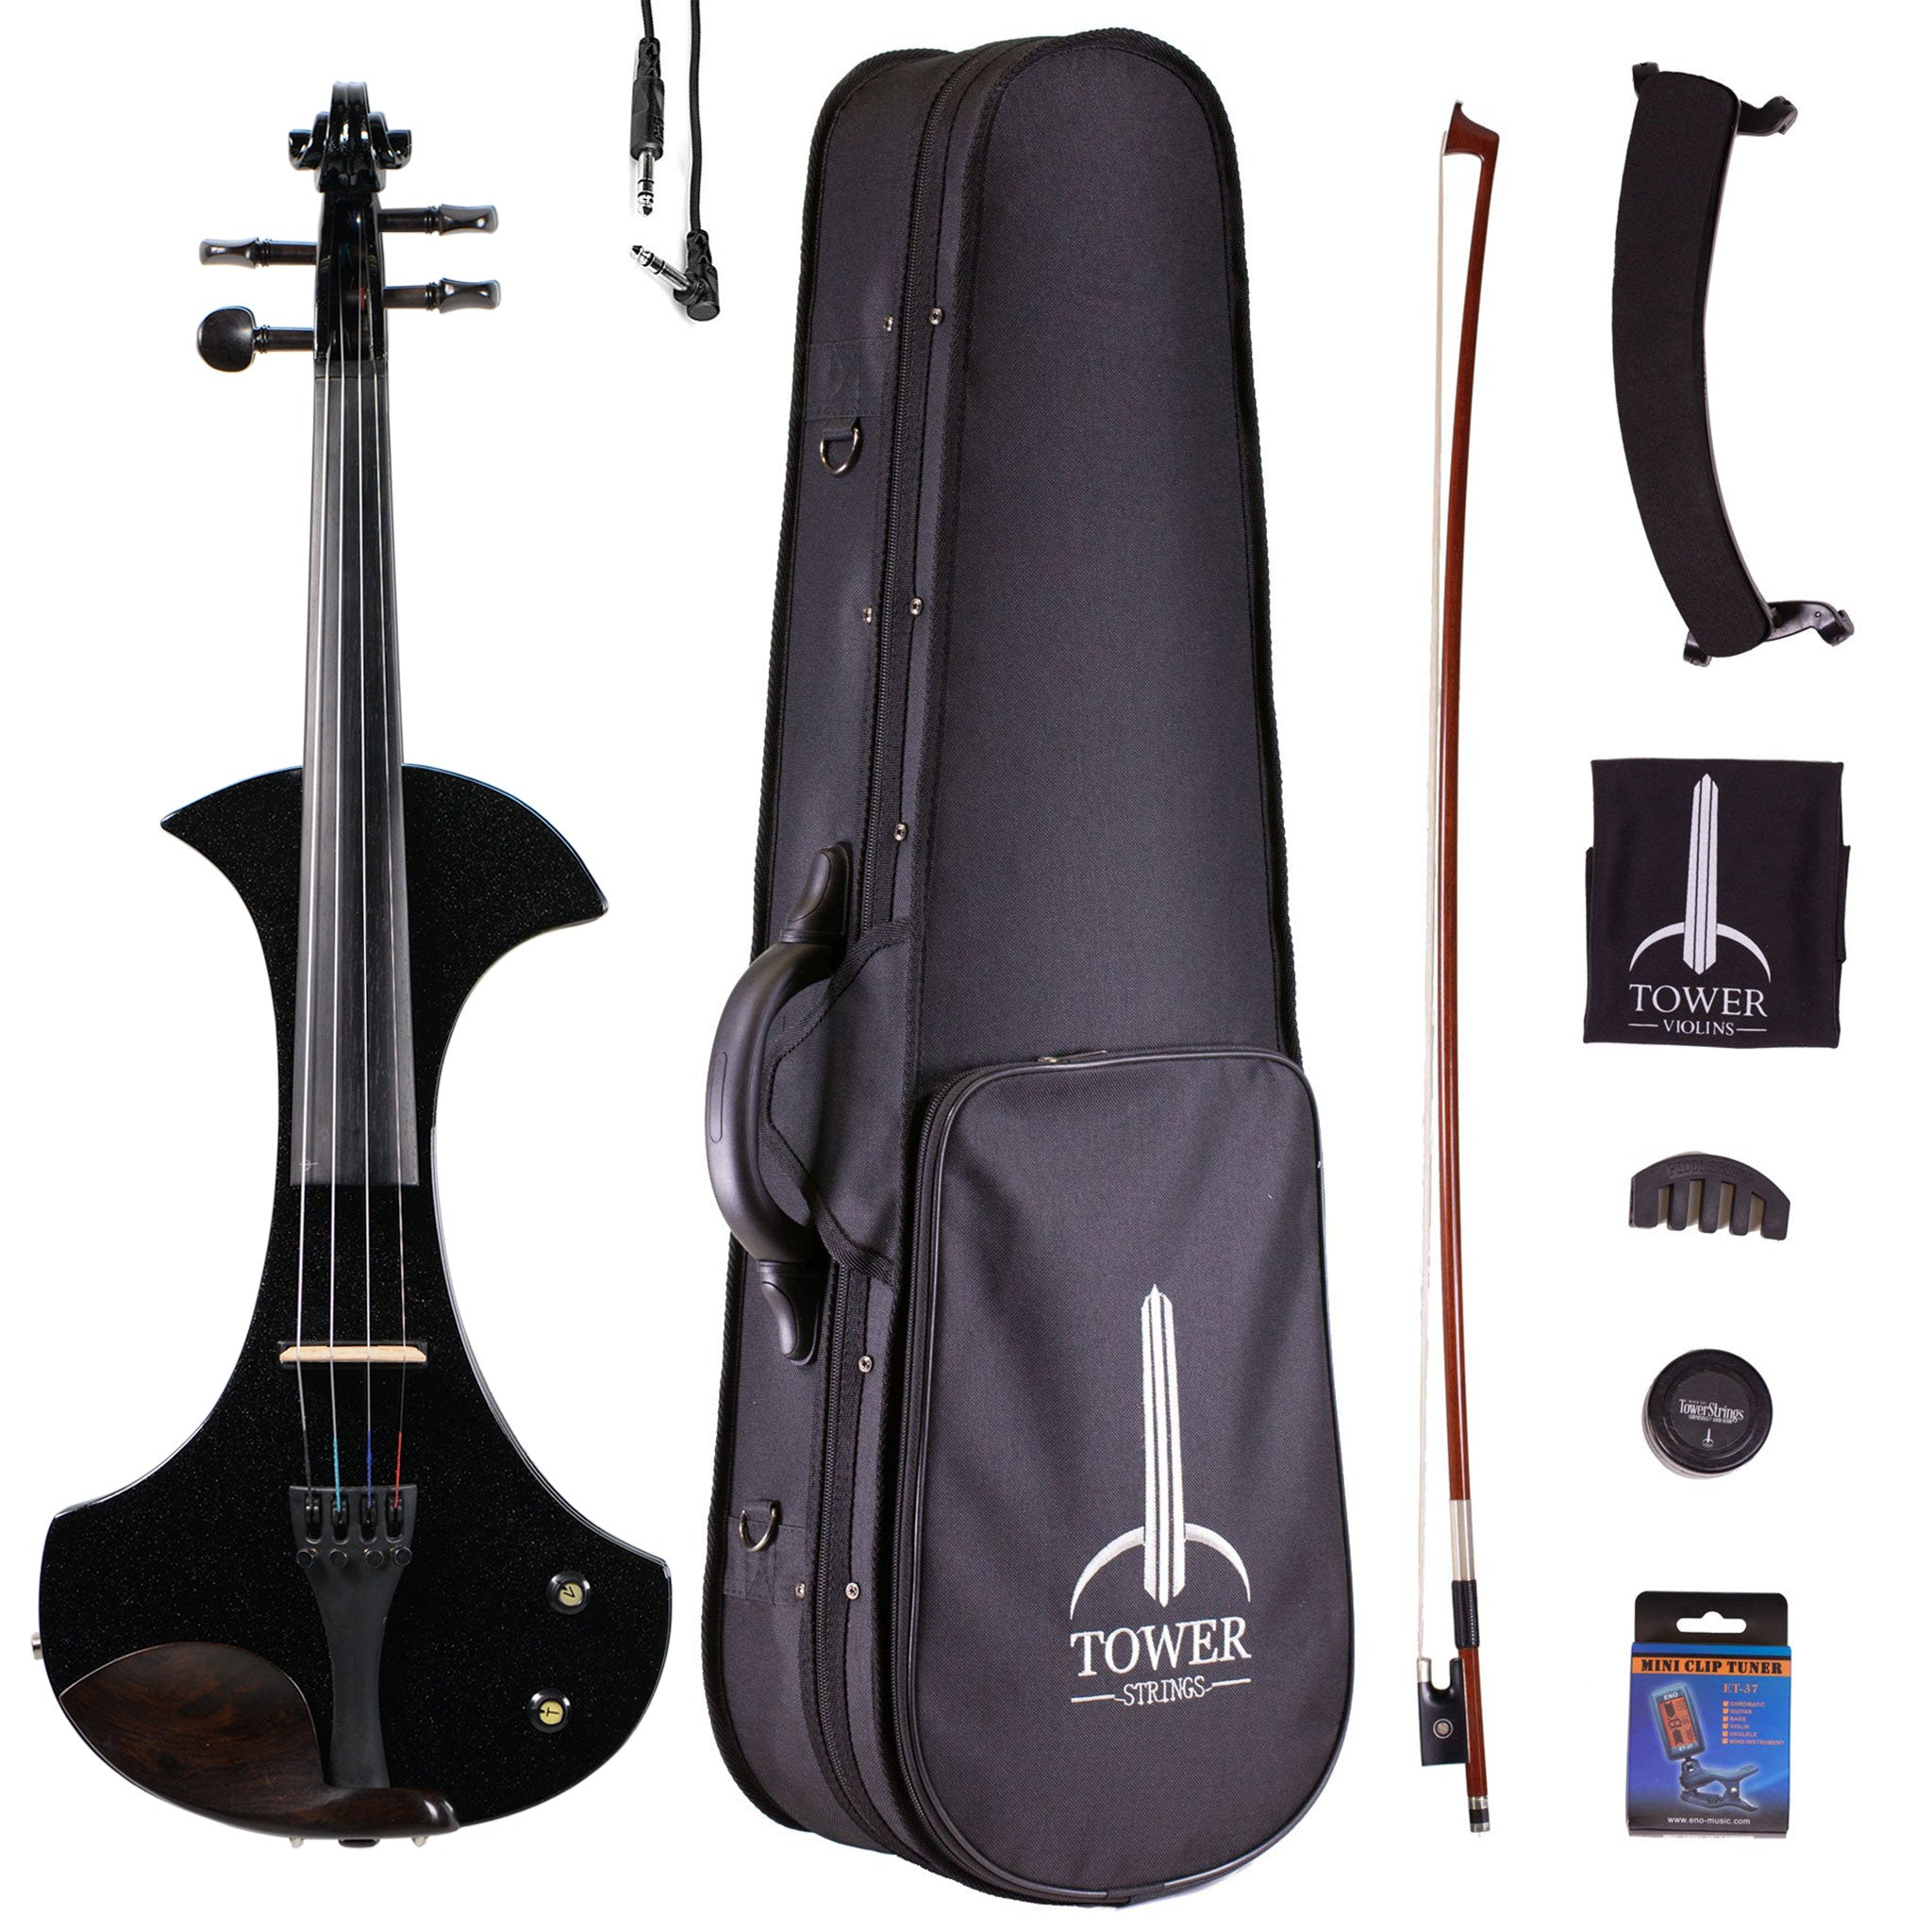 Tower Strings Electric Pro Violin Outfit